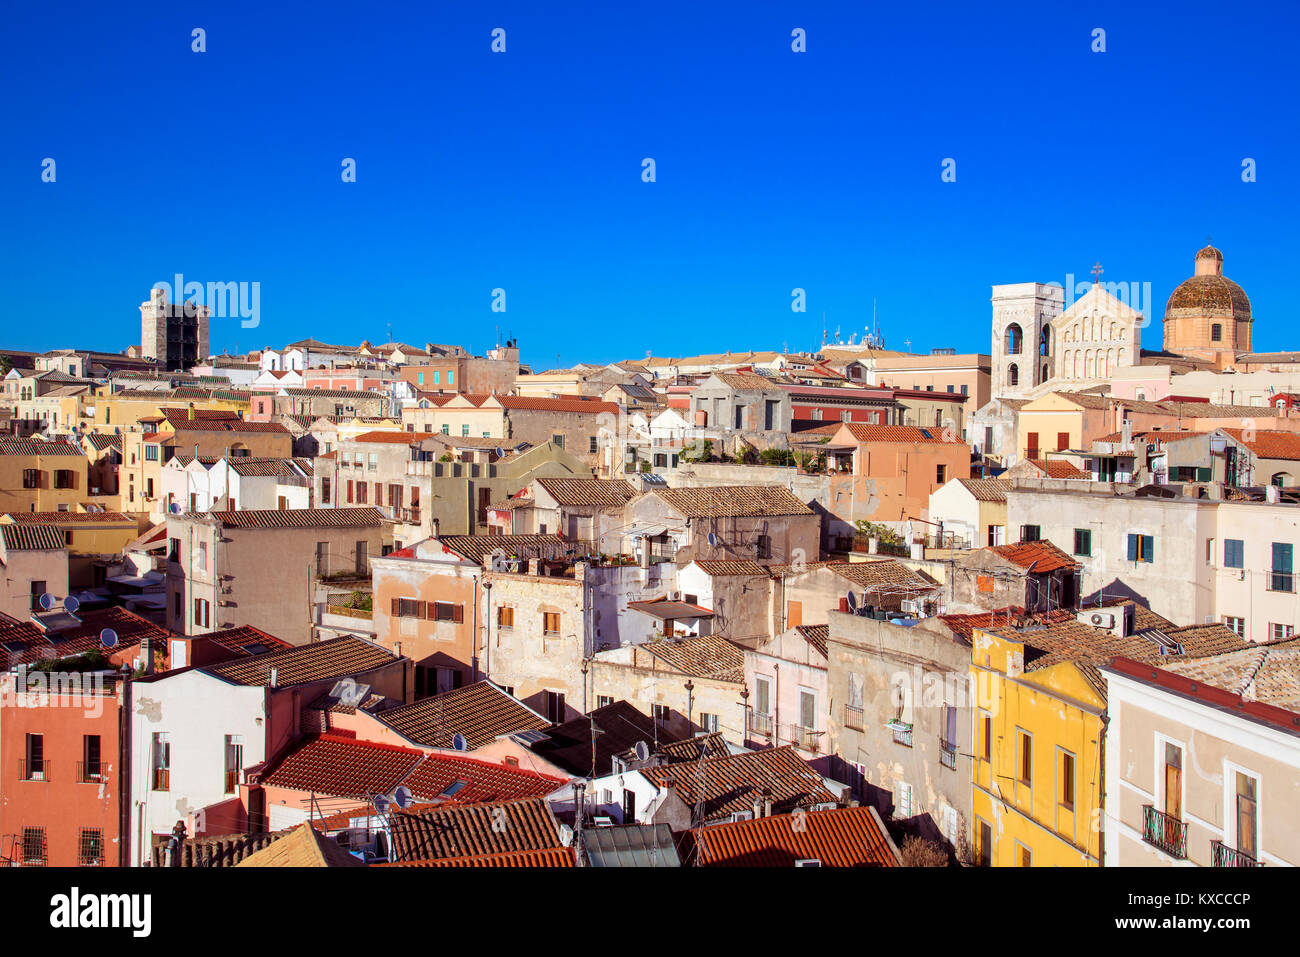 an aerial view of the old town of Cagliari, in Sardinia, Italy, highlighting the bell tower and the top of the facade Stock Photo